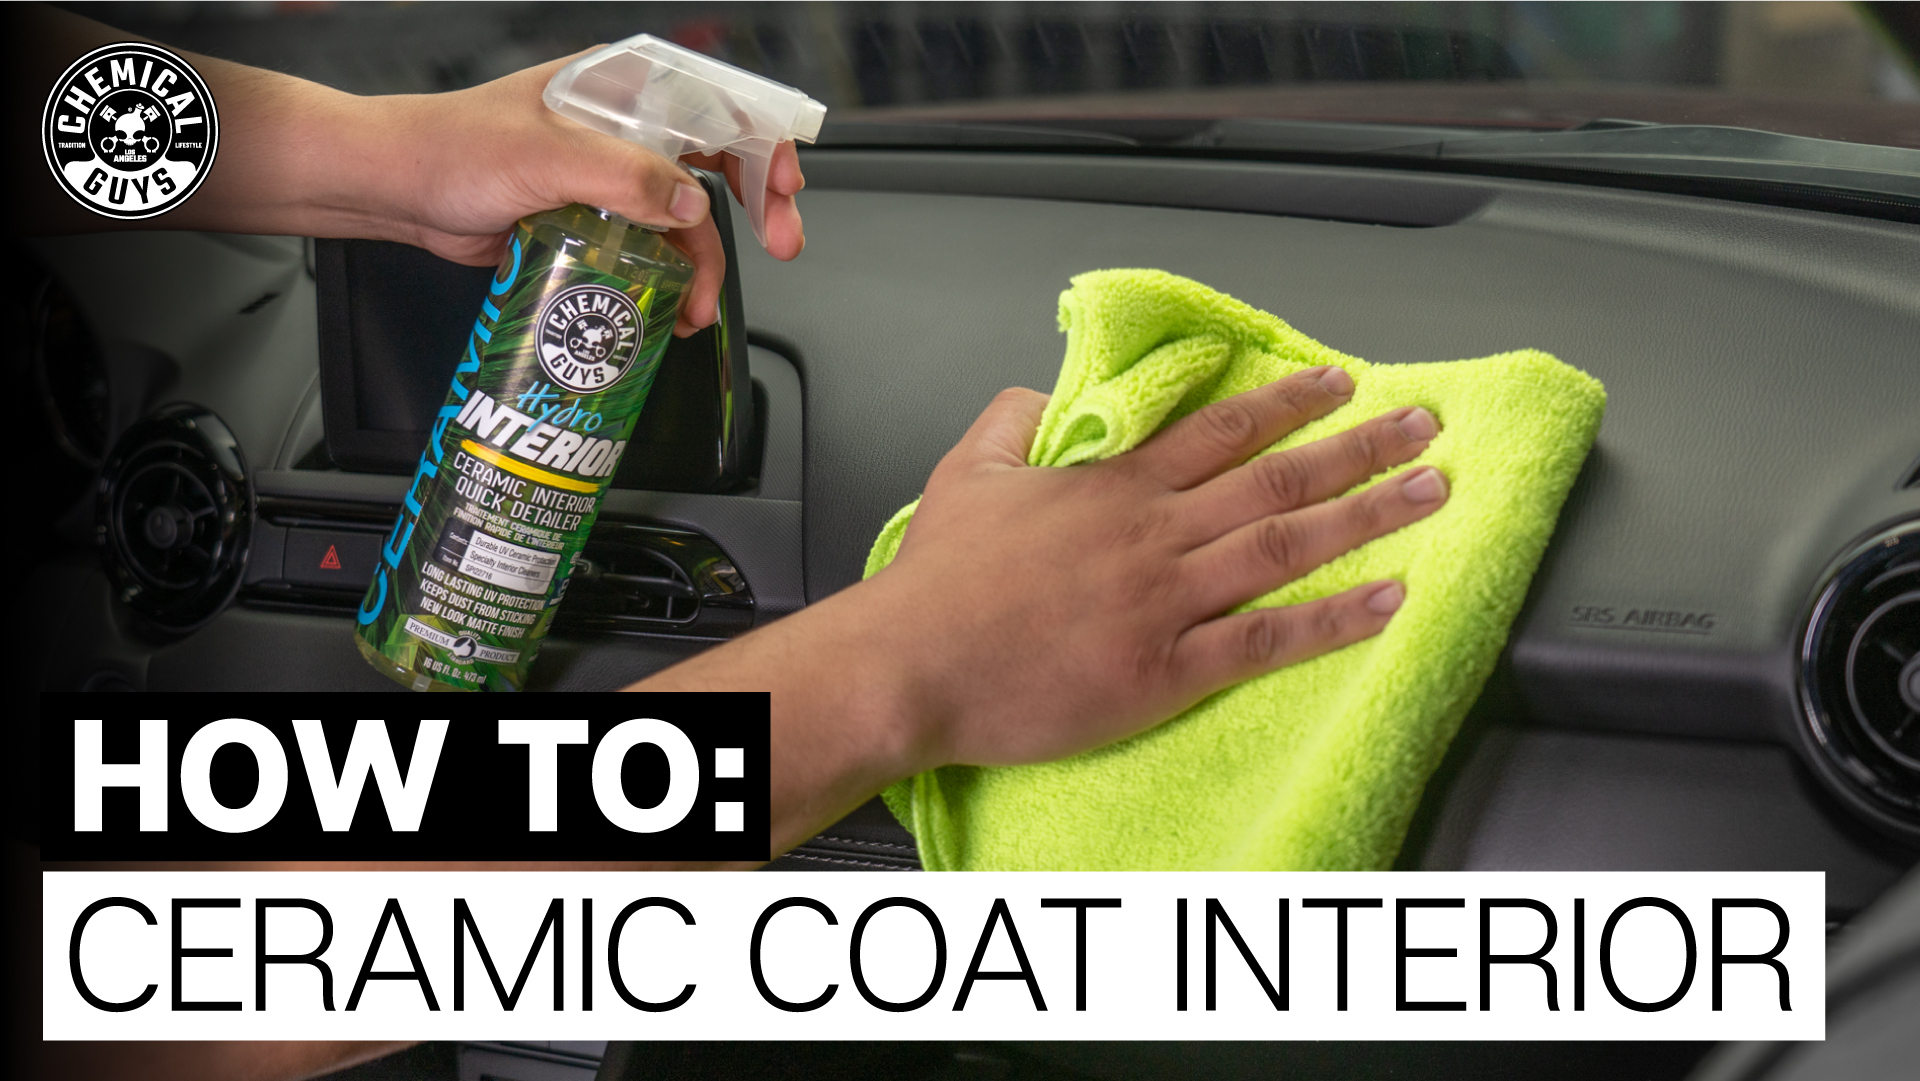 Utilizing specialty cleaners, polymers, and nanoparticles of SiO2, HydroInterior delivers superior results and an even new-look factory matte finish with extra long lasting protection. HydroInterior is more than a ceramic detailer. Utilizing the latest in modern chemistry, the unique fusion of SIO2 gives HydroInterior self-cleaning properties that help keep dust from sticking and keep your interior cleaner longer!